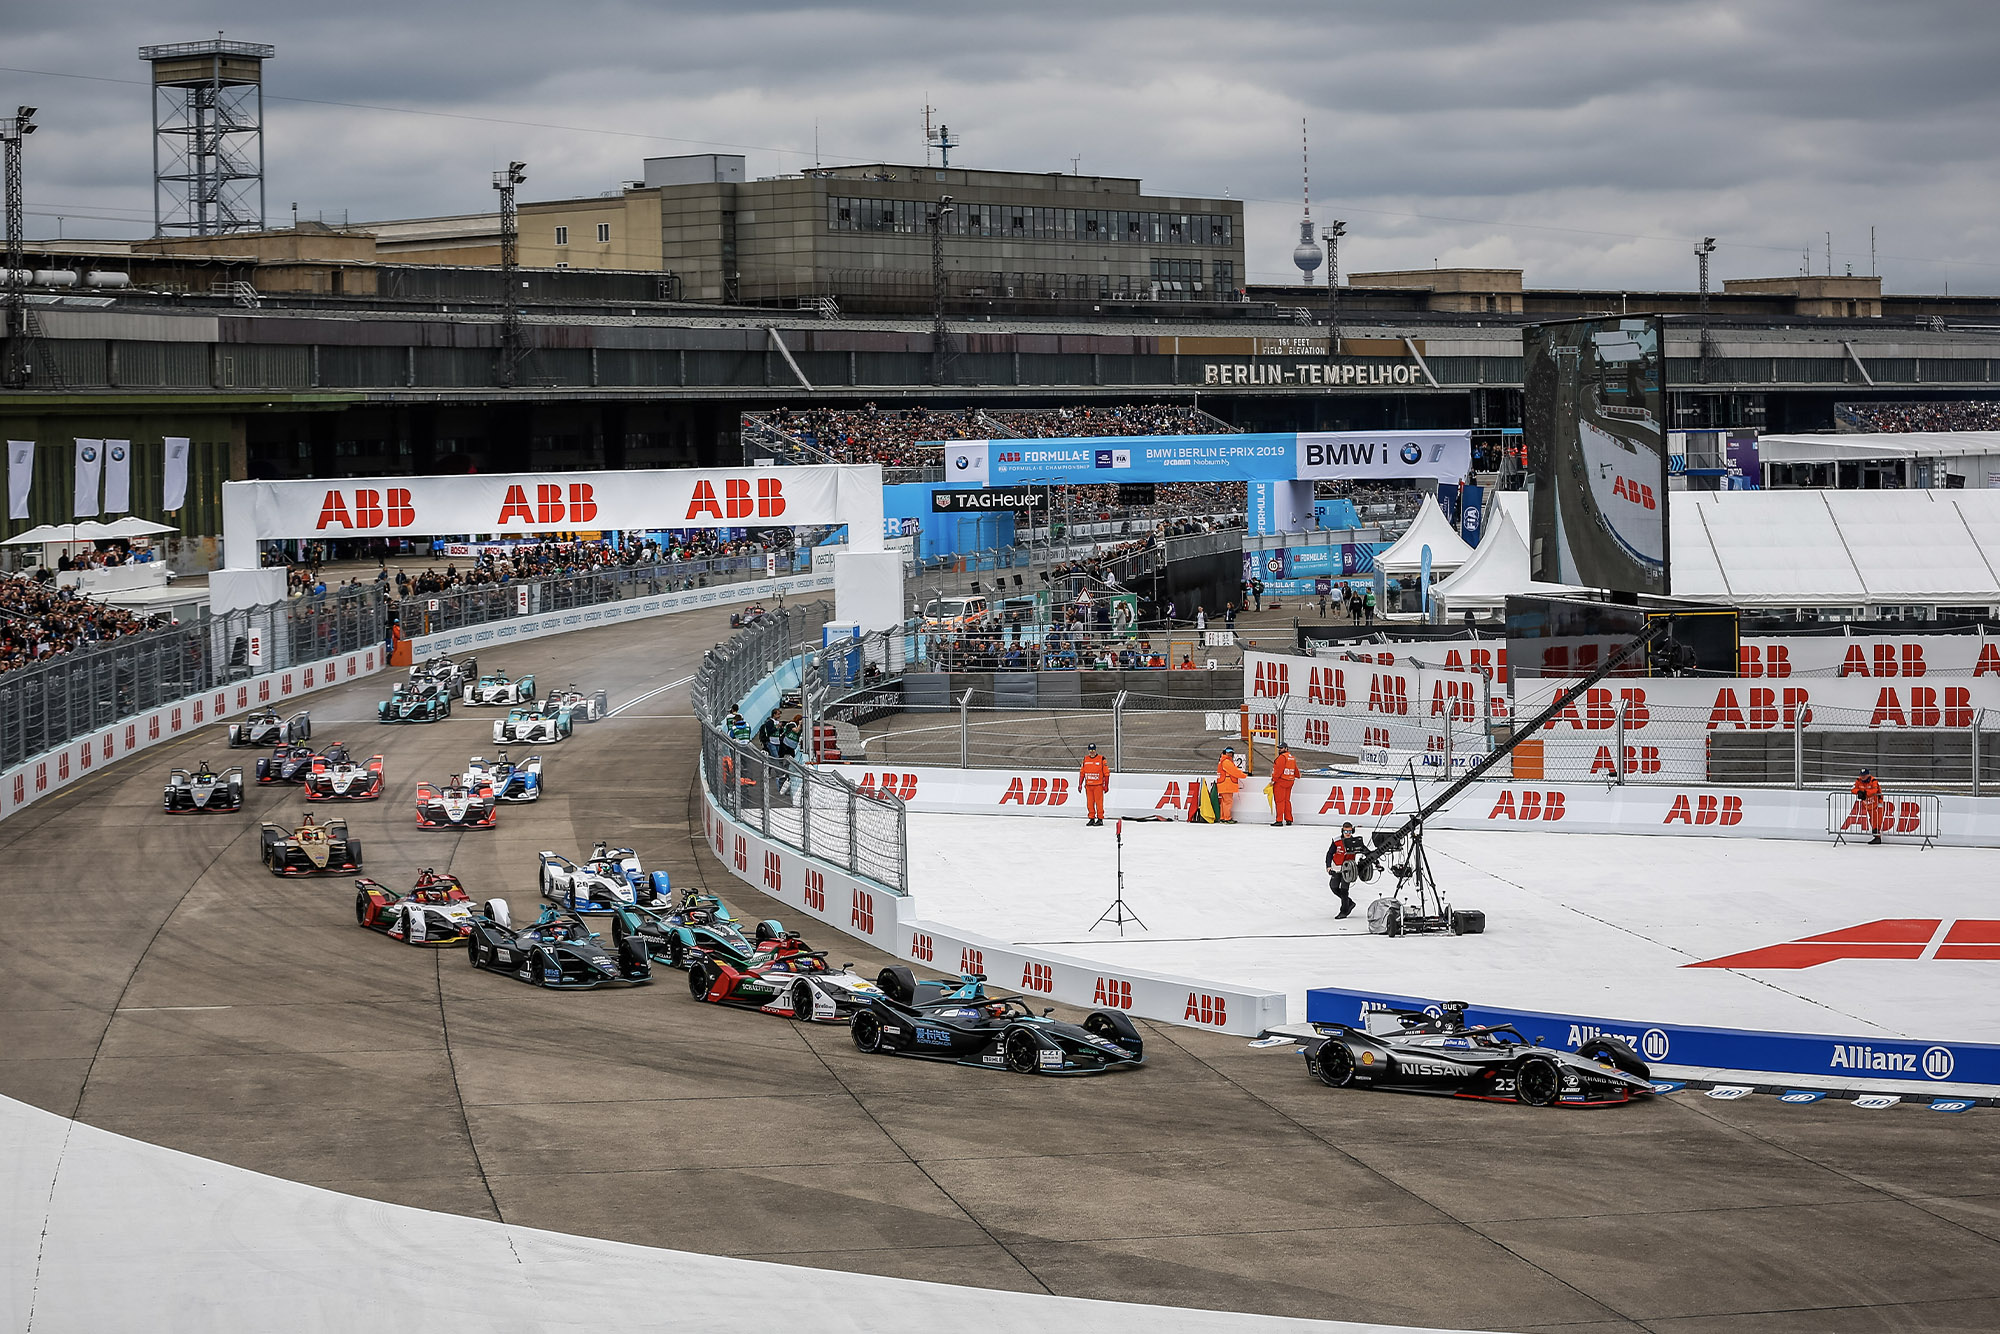 Formula E's 'summer camp' finale: Half a season in 9 days